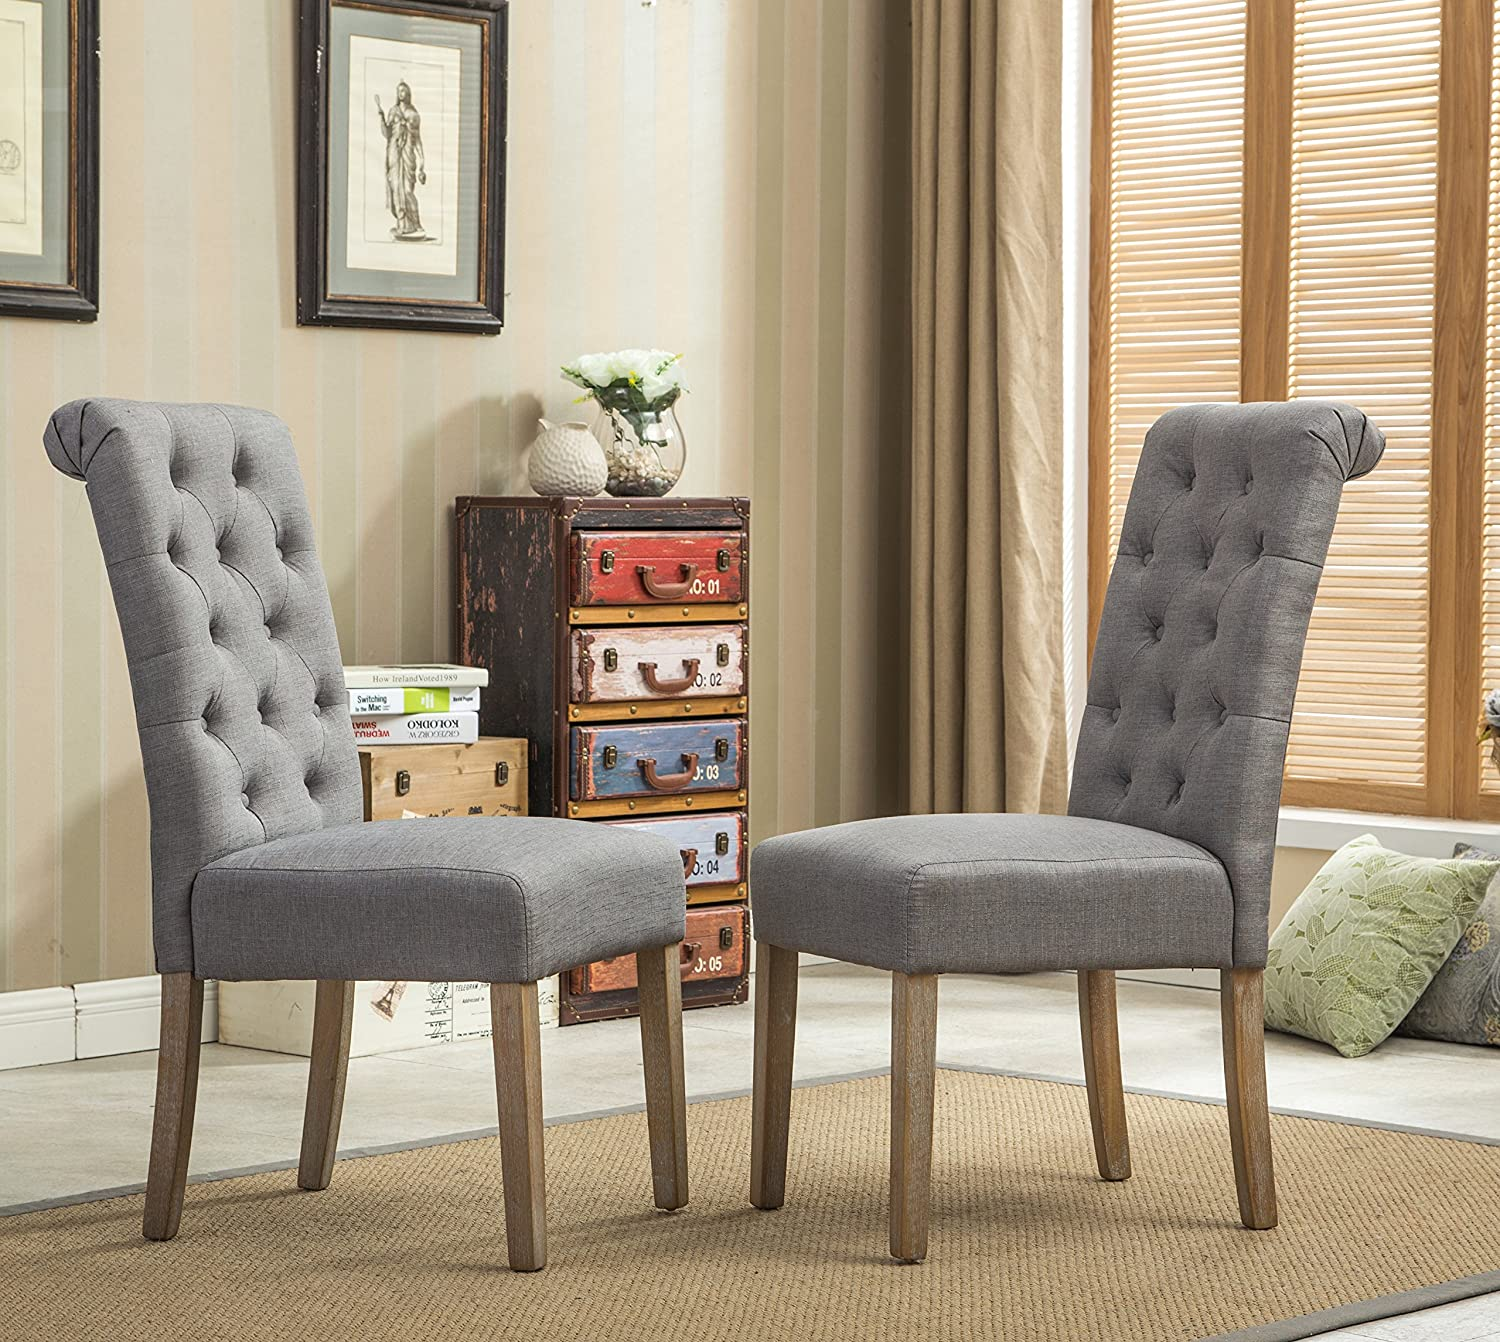 Attractive Amazon.com   Roundhill Furniture Habit Grey Solid Wood Tufted Parsons Dining  Chair (Set Of 2), Gray   Chairs